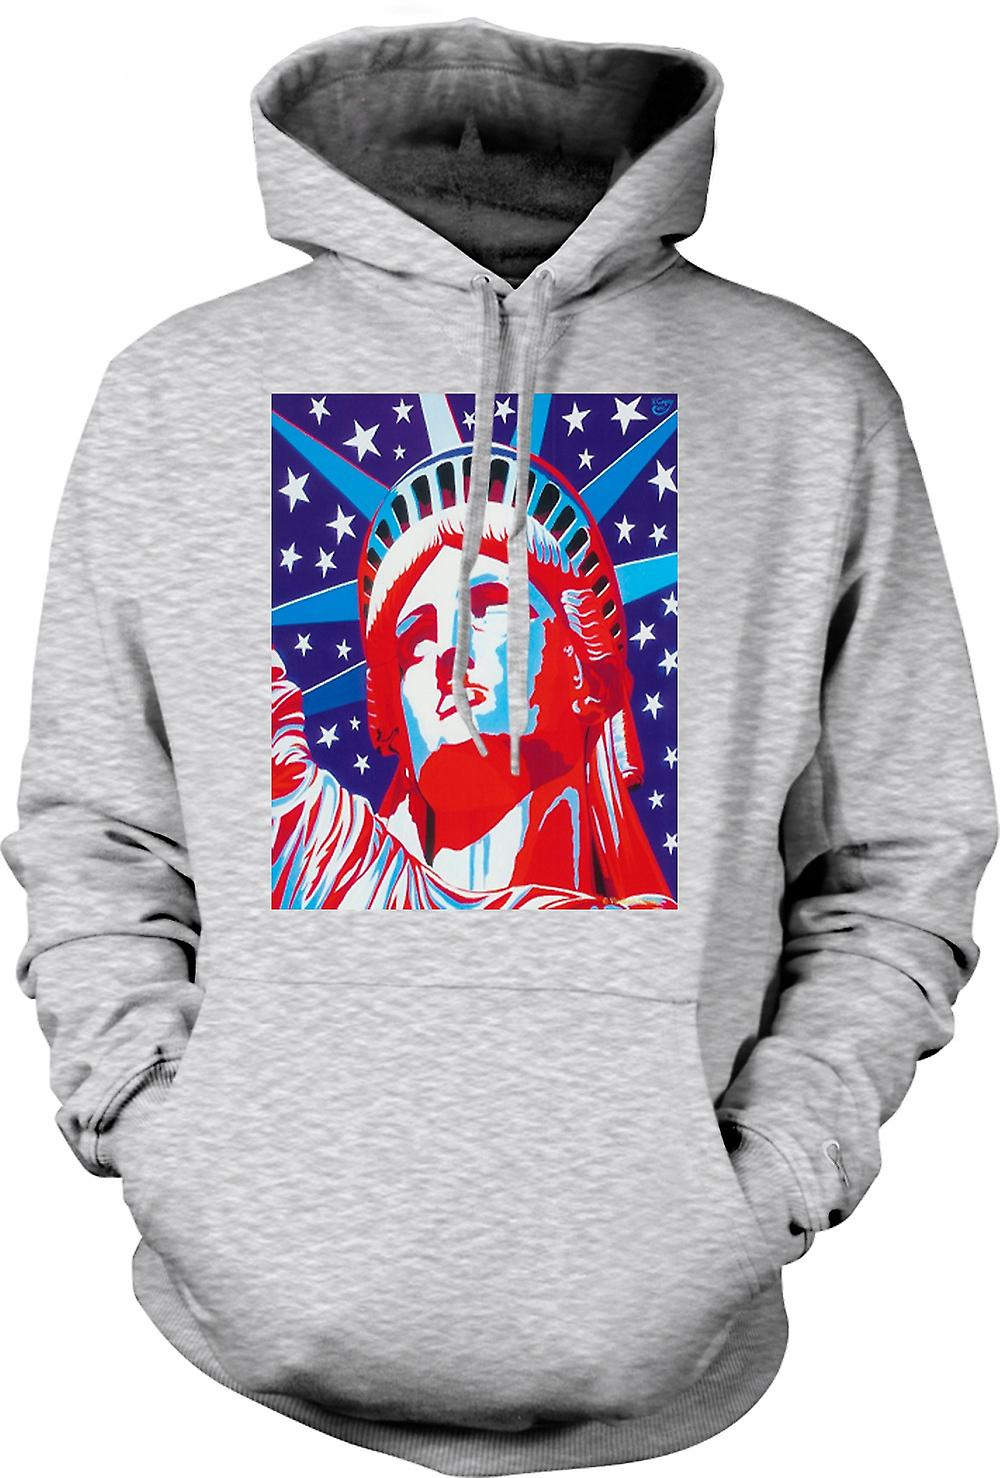 Mens Hoodie - Statue Of Liberty - Pop Art